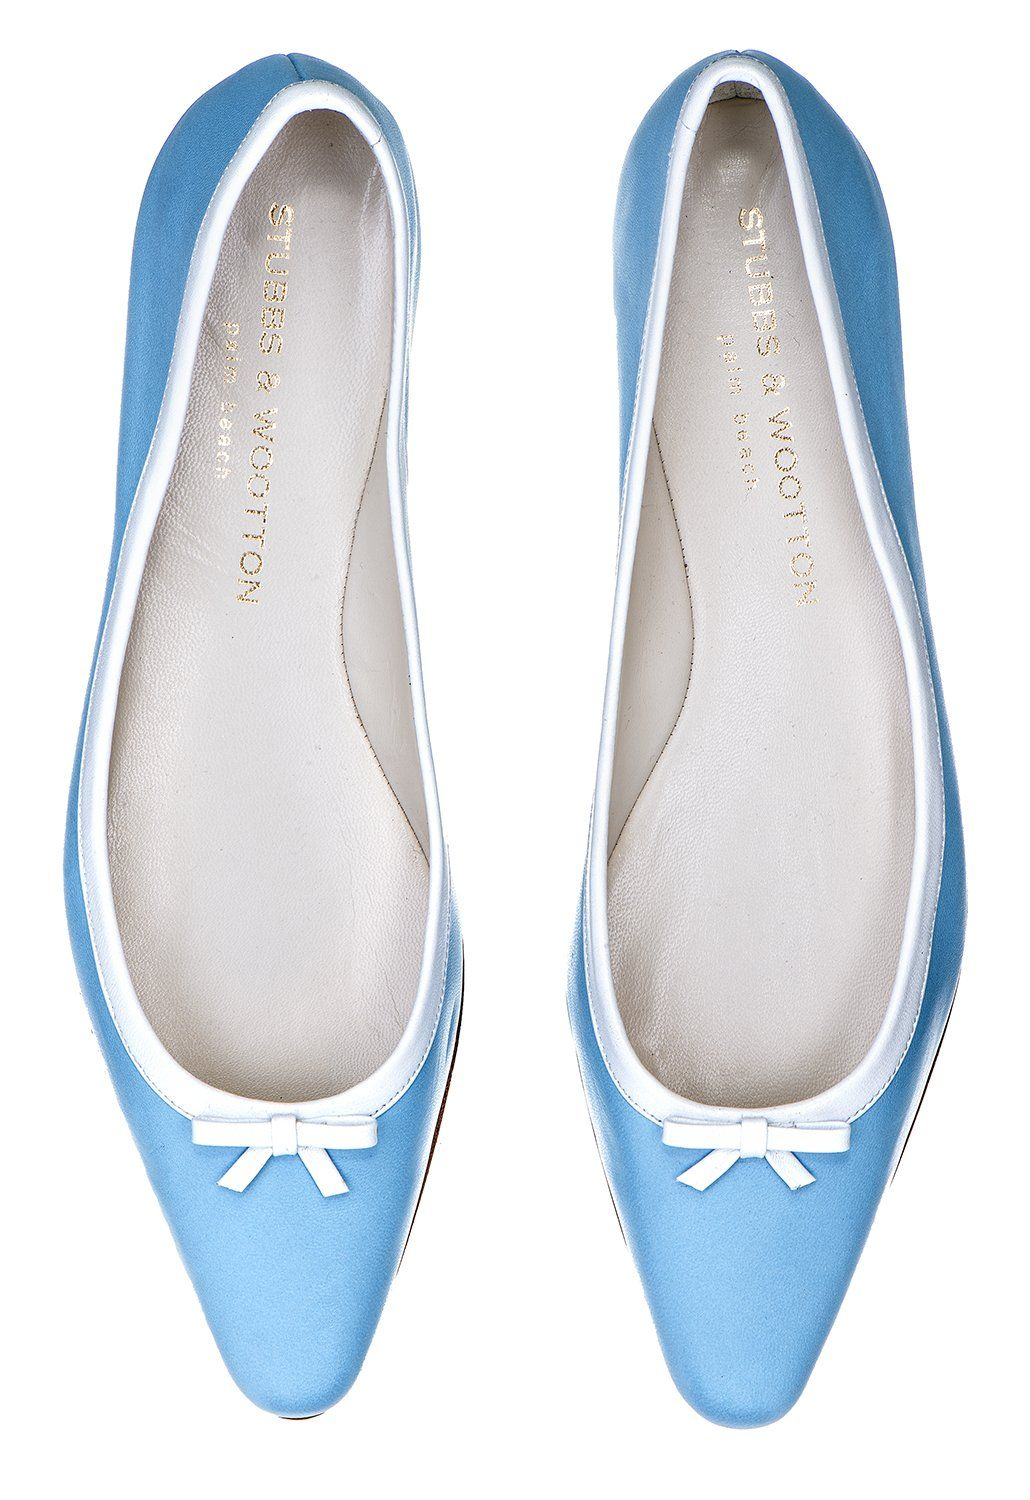 520390e933b29 Our Alicia Ballerina features a leather upper with white leather trim and  bow. - Meticulously